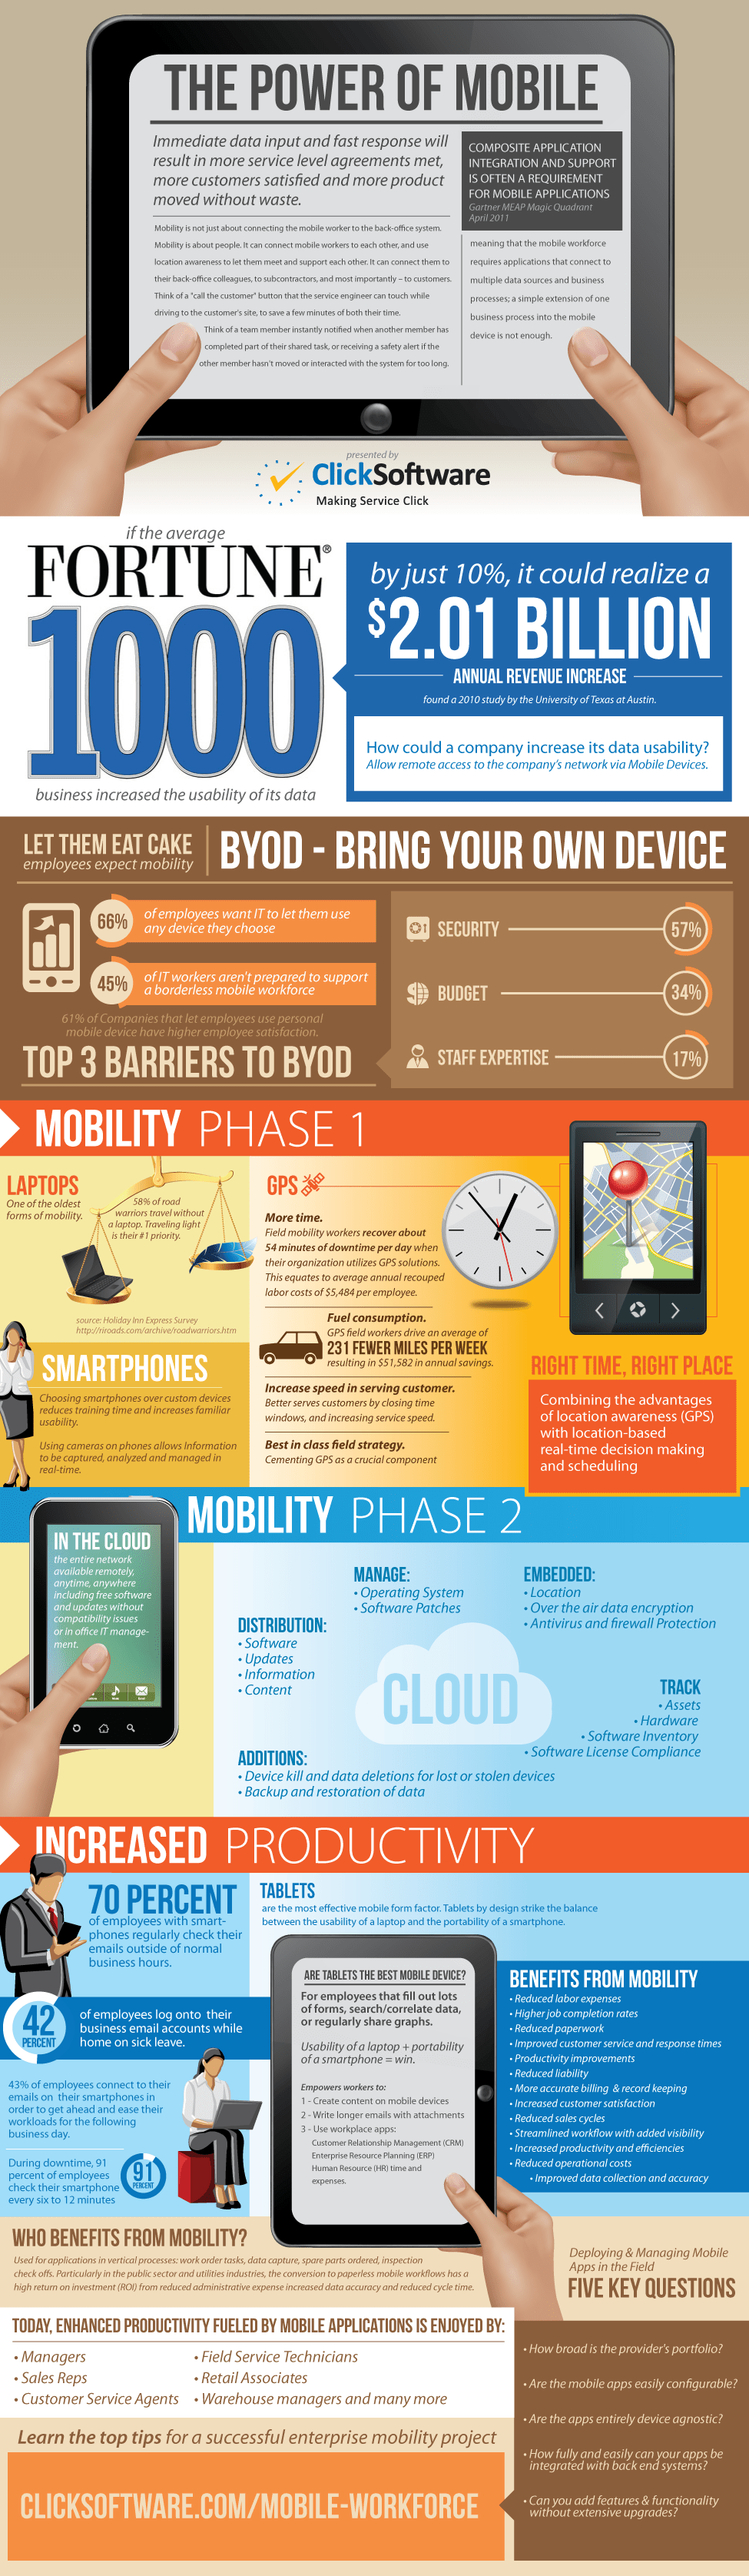 mobile device/byod infographic